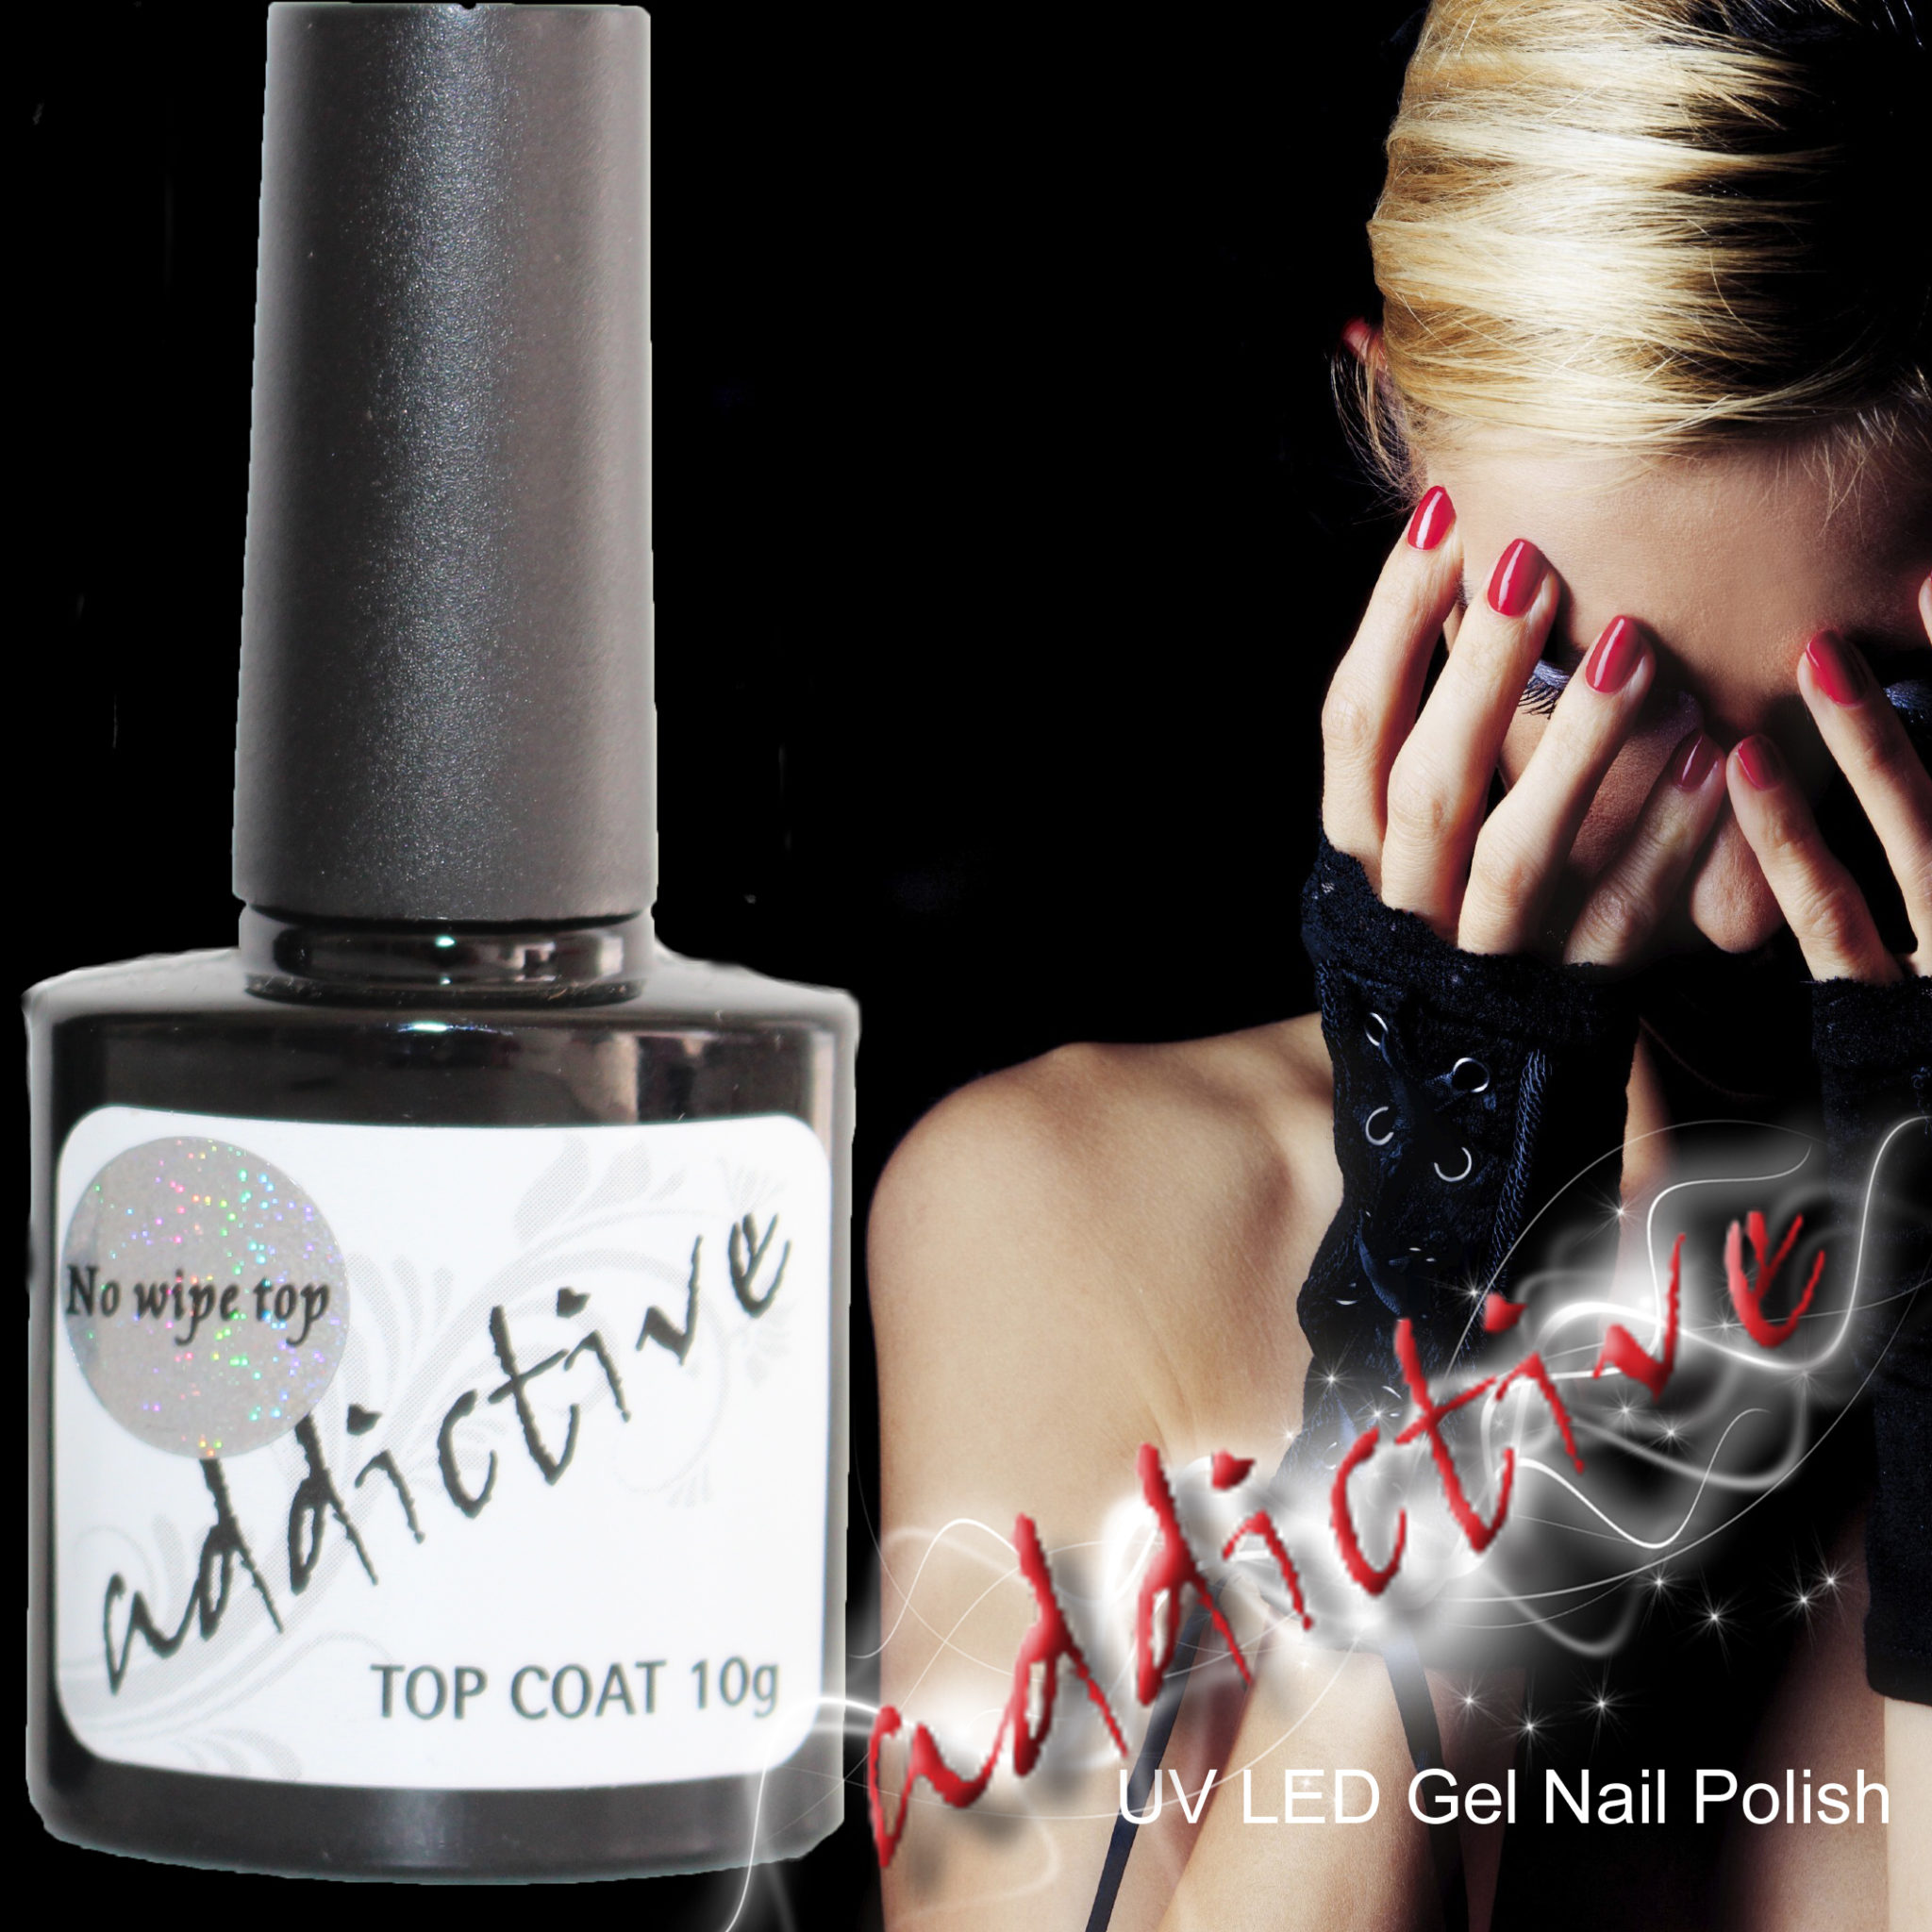 No Wipe Top Coat 10g « Simply Glamorous Beauty Supplies